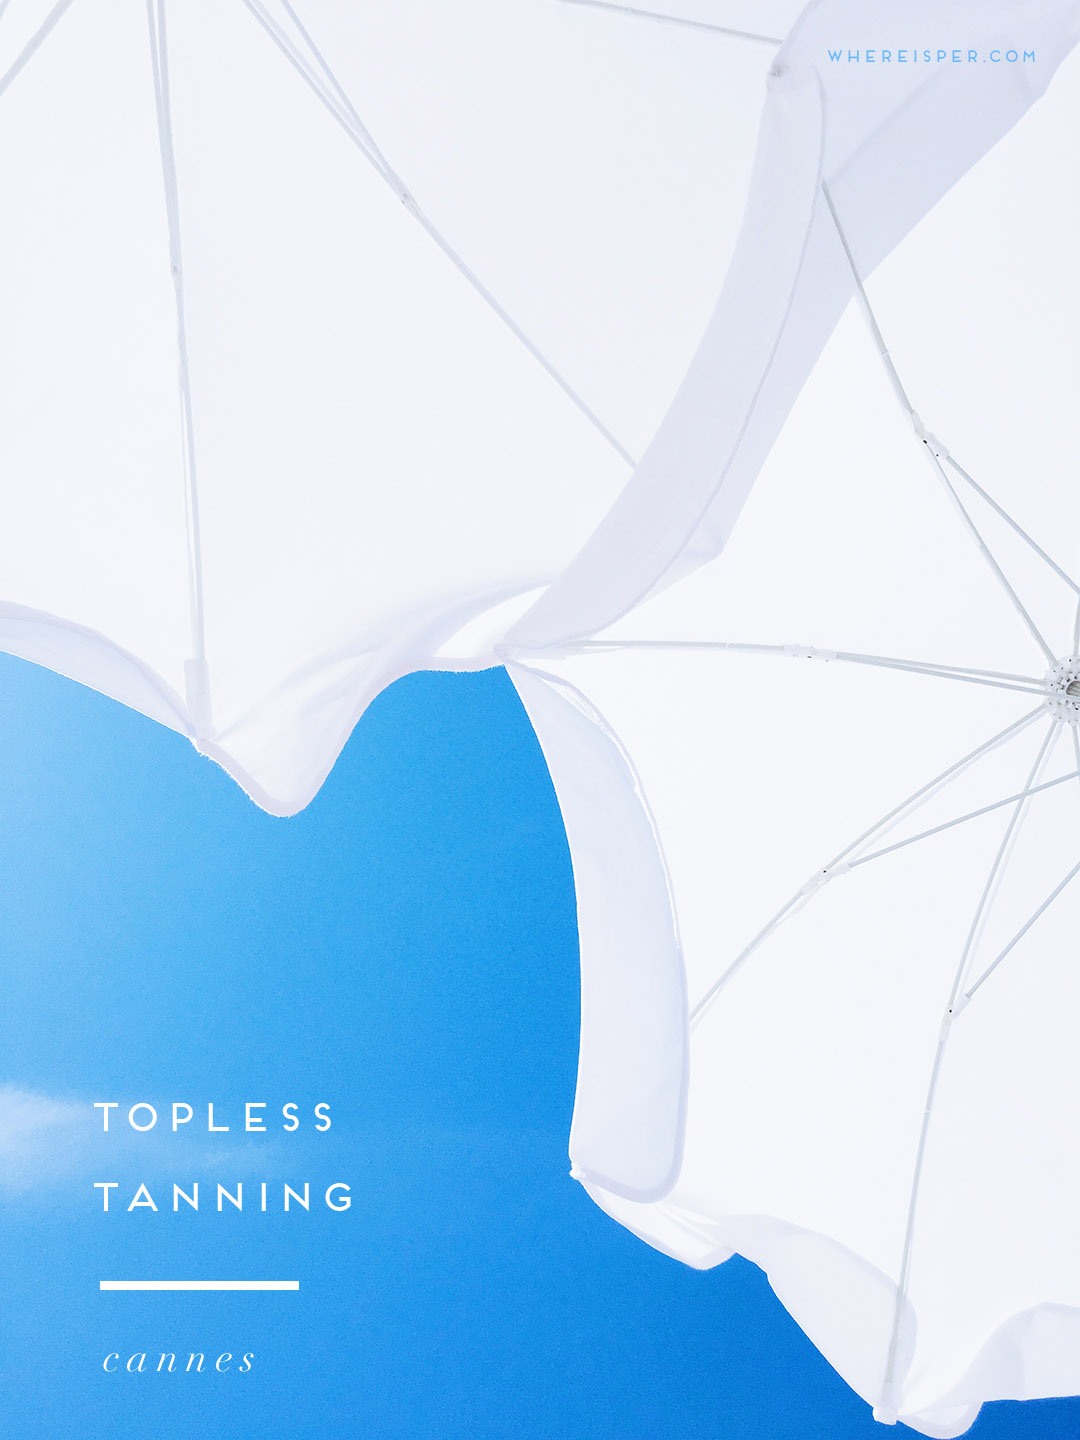 topless tanning cannes